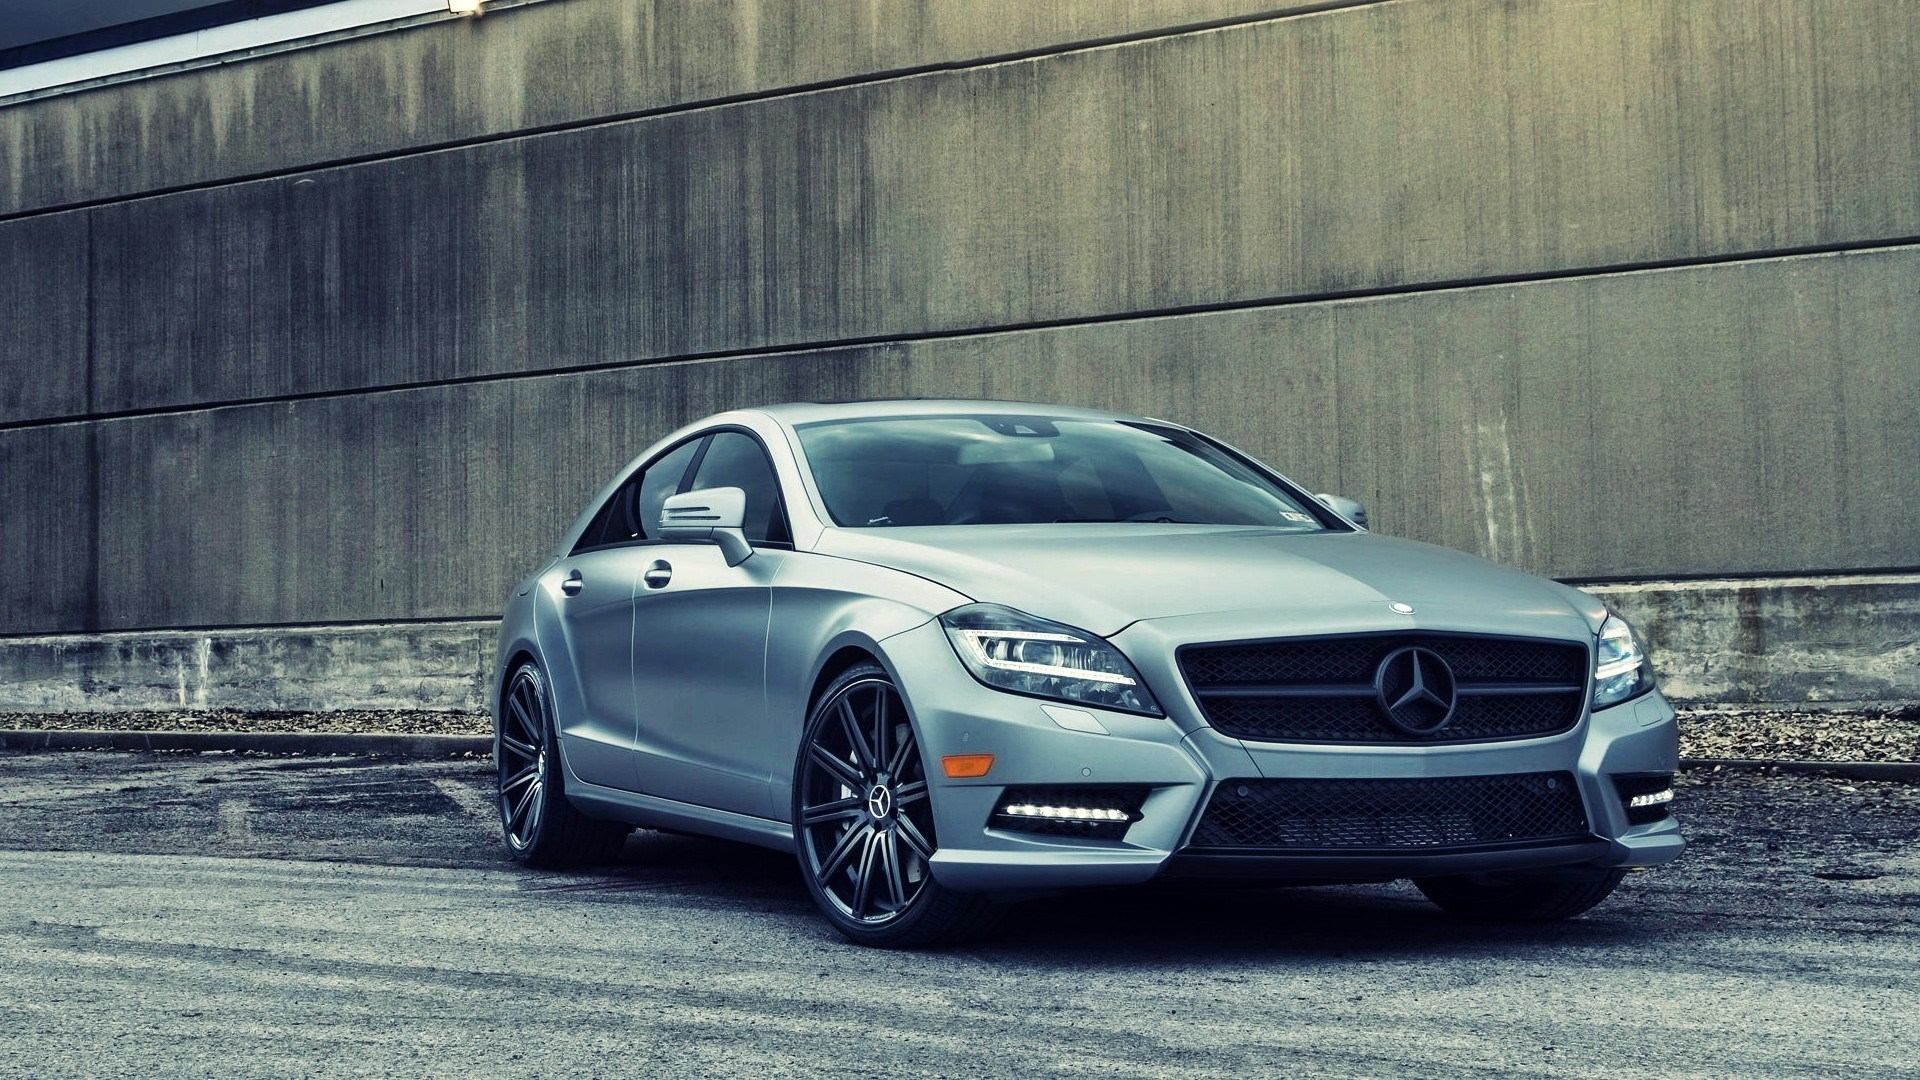 2019 Mercedes Benz CLS63 AMG photo - 5